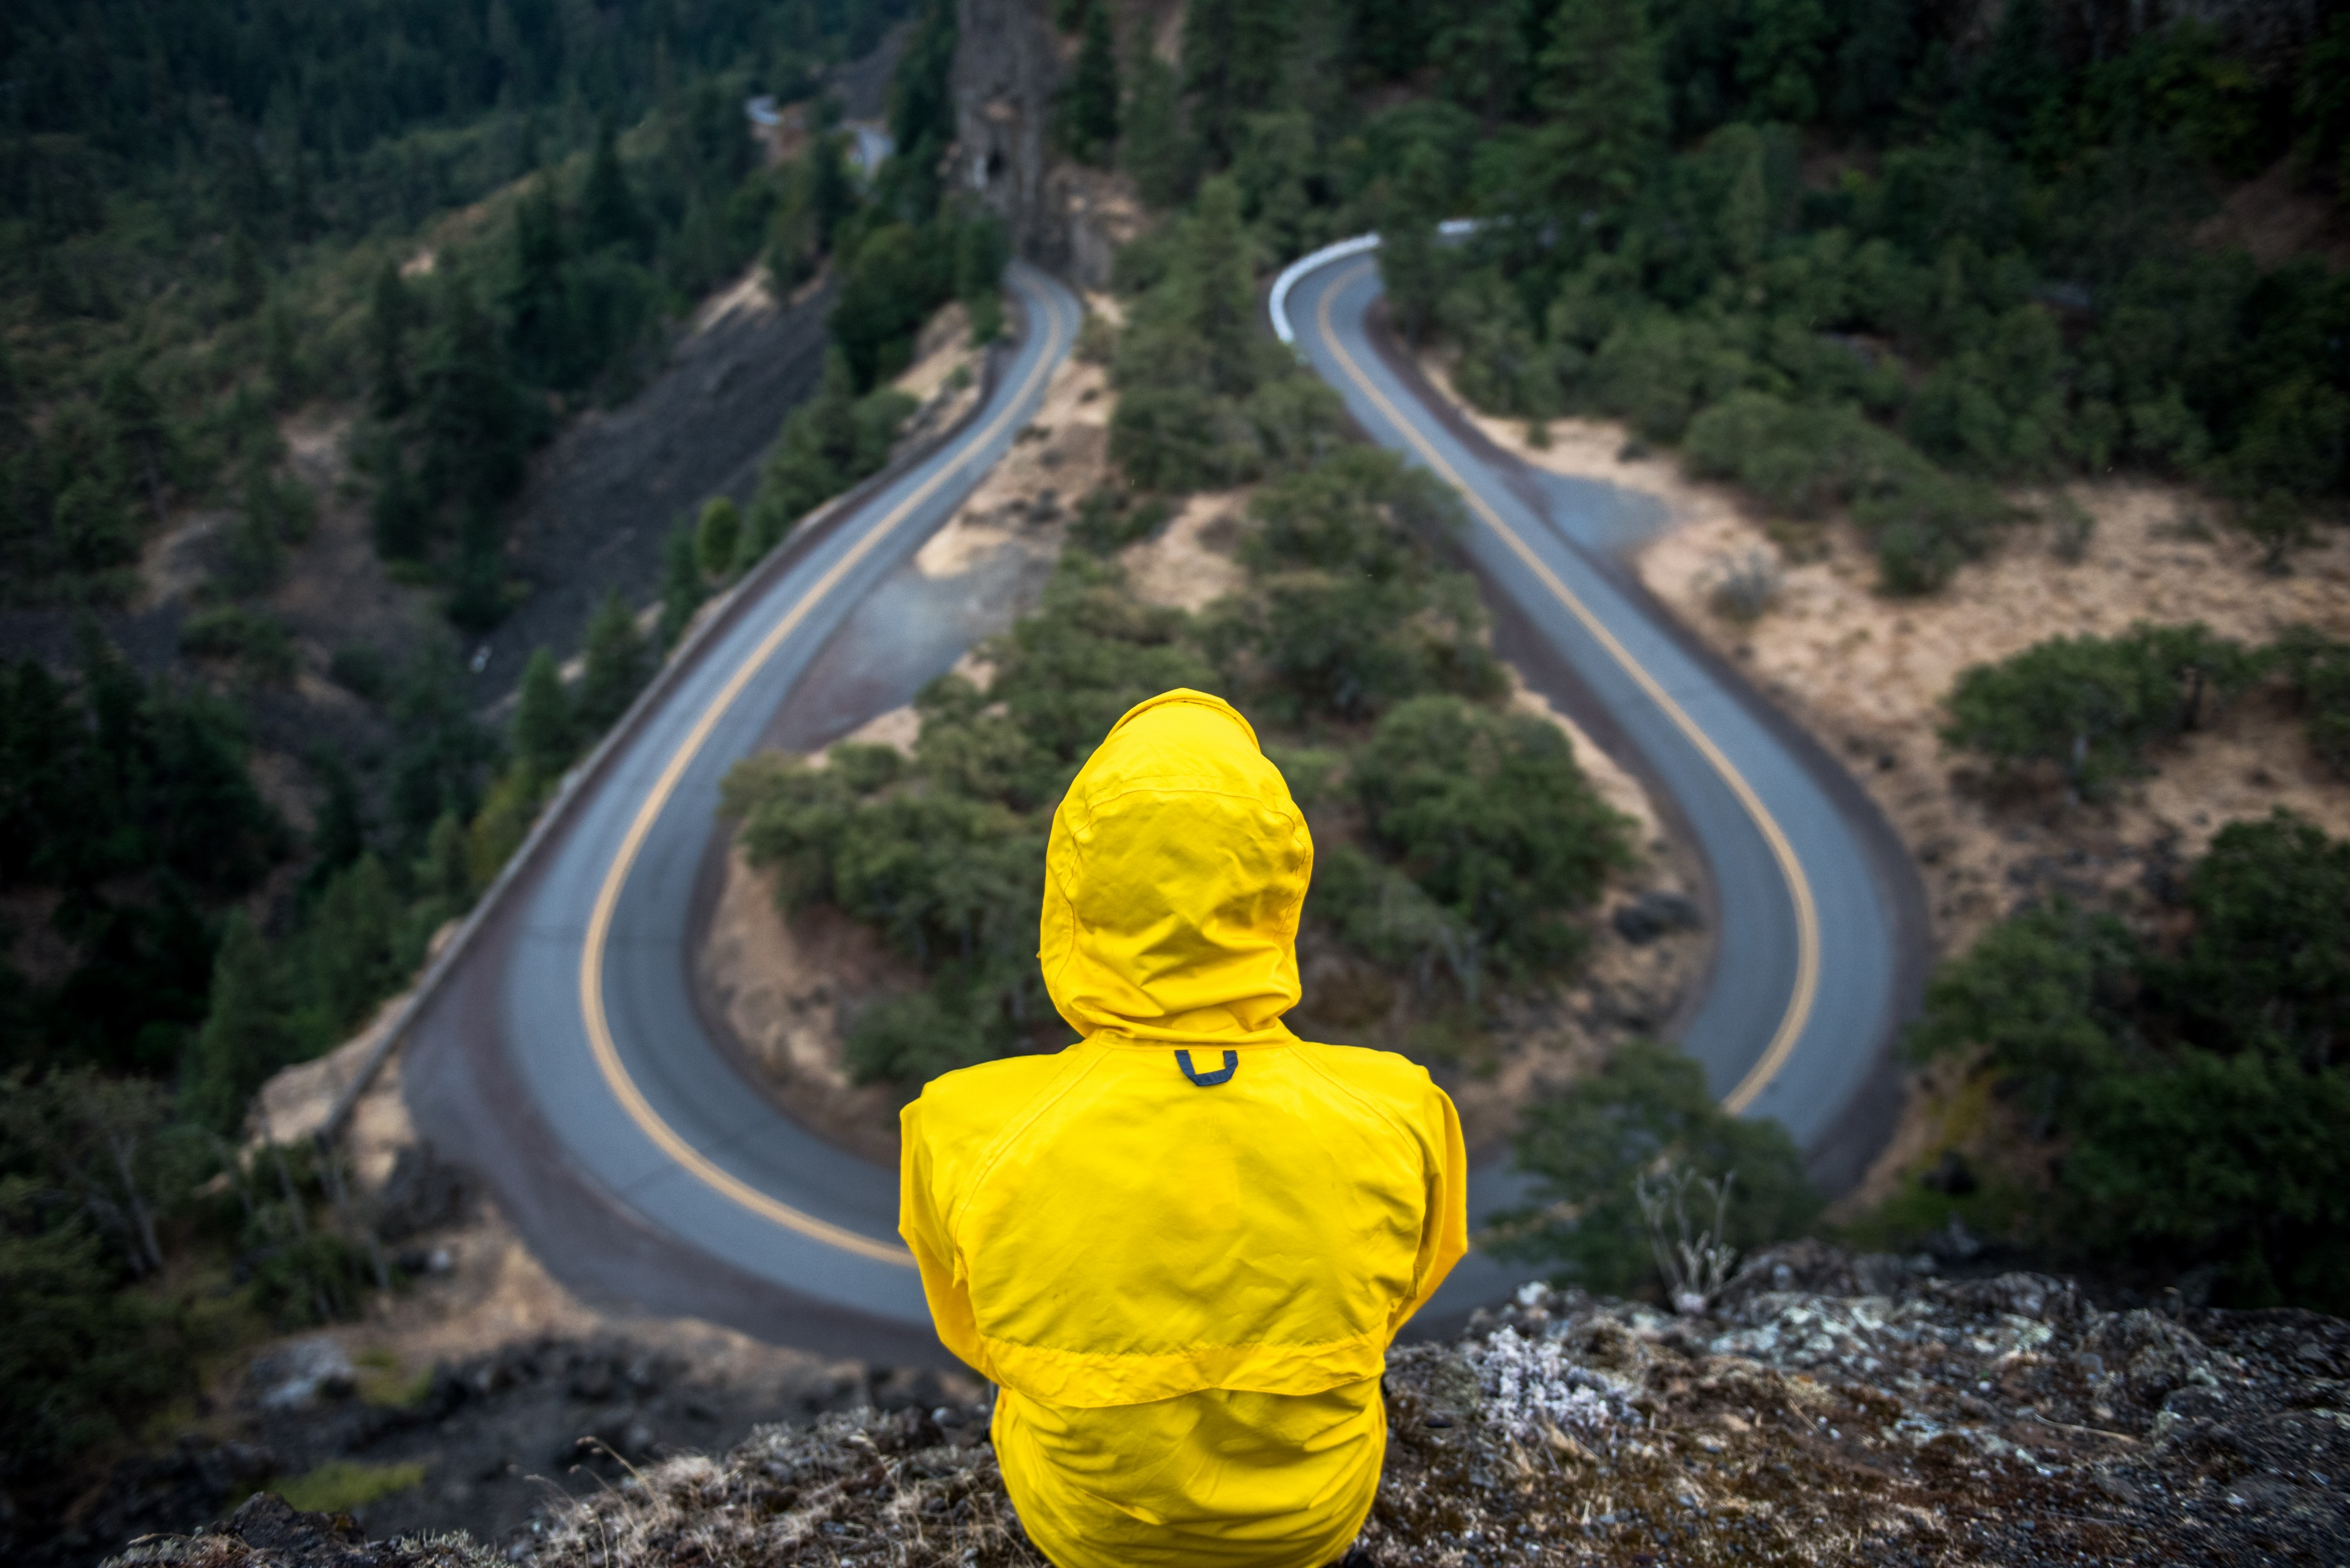 """person in yellow coat standing on top of hill"" by [Justin Luebke](https://unsplash.com/@jluebke?utm_source=medium&utm_medium=referral) on [Unsplash](https://unsplash.com?utm_source=medium&utm_medium=referral)"